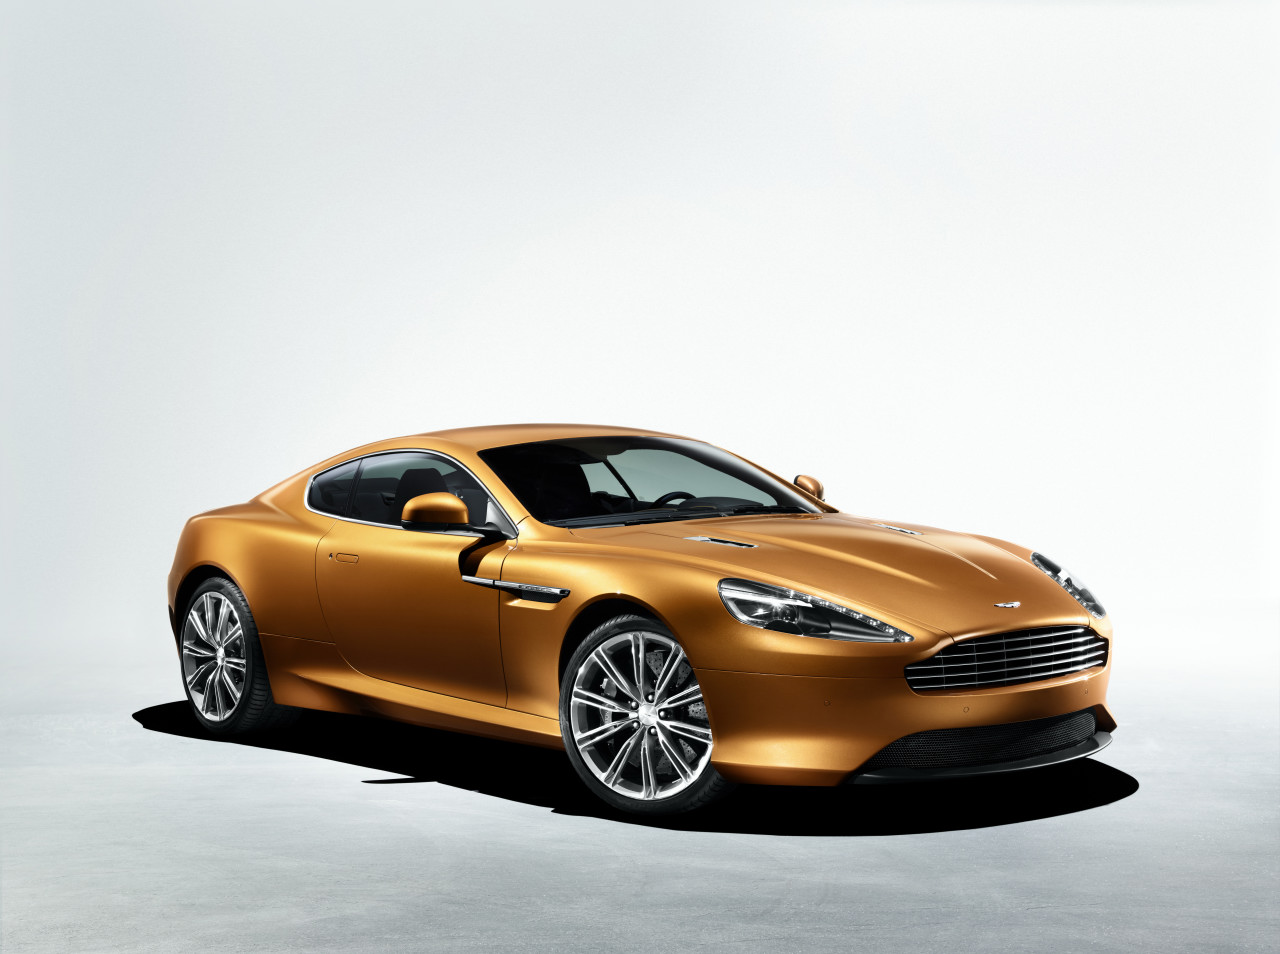 Aston martin virage photo - 3